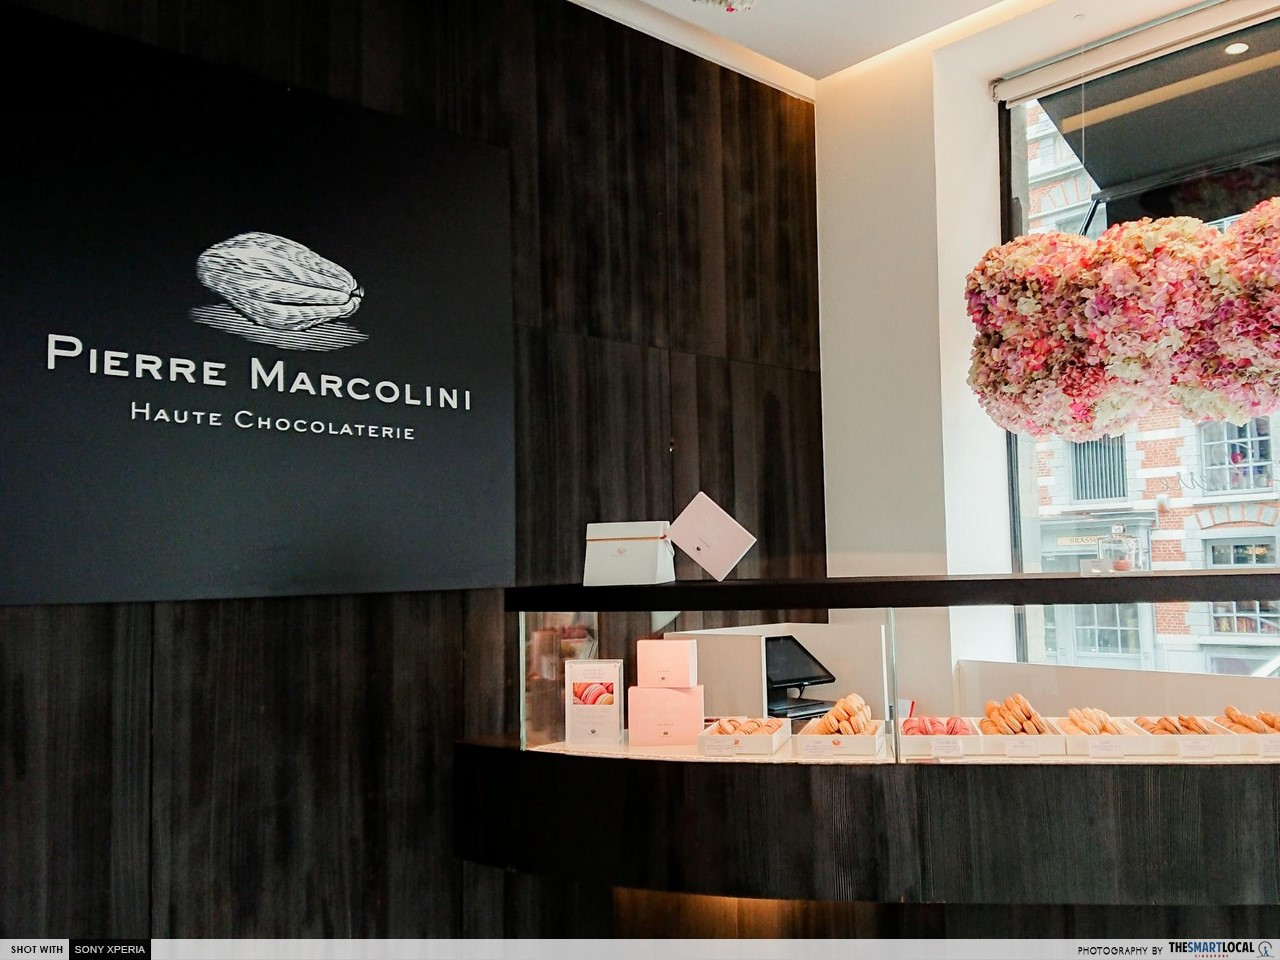 Brussels 7 things (1) - Pierre Marcolini interior